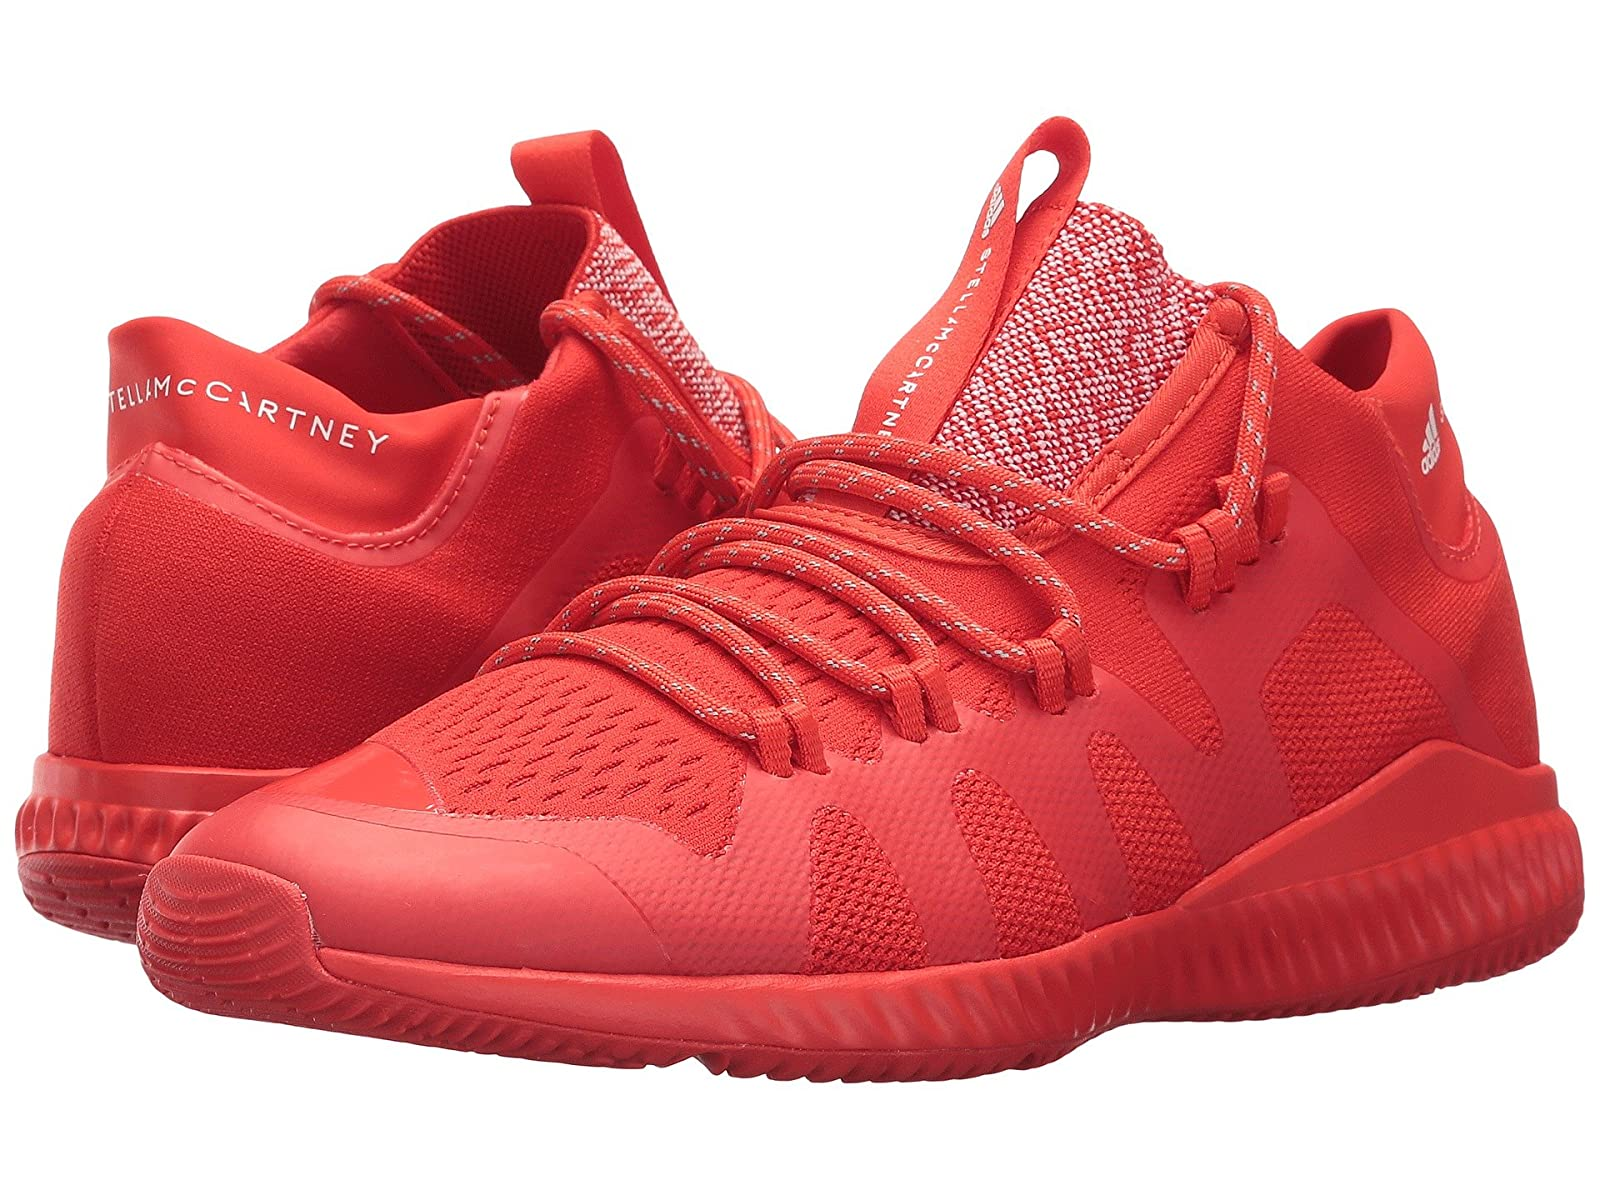 adidas by Stella McCartney CrazyTrain Bounce MidAtmospheric grades have affordable shoes